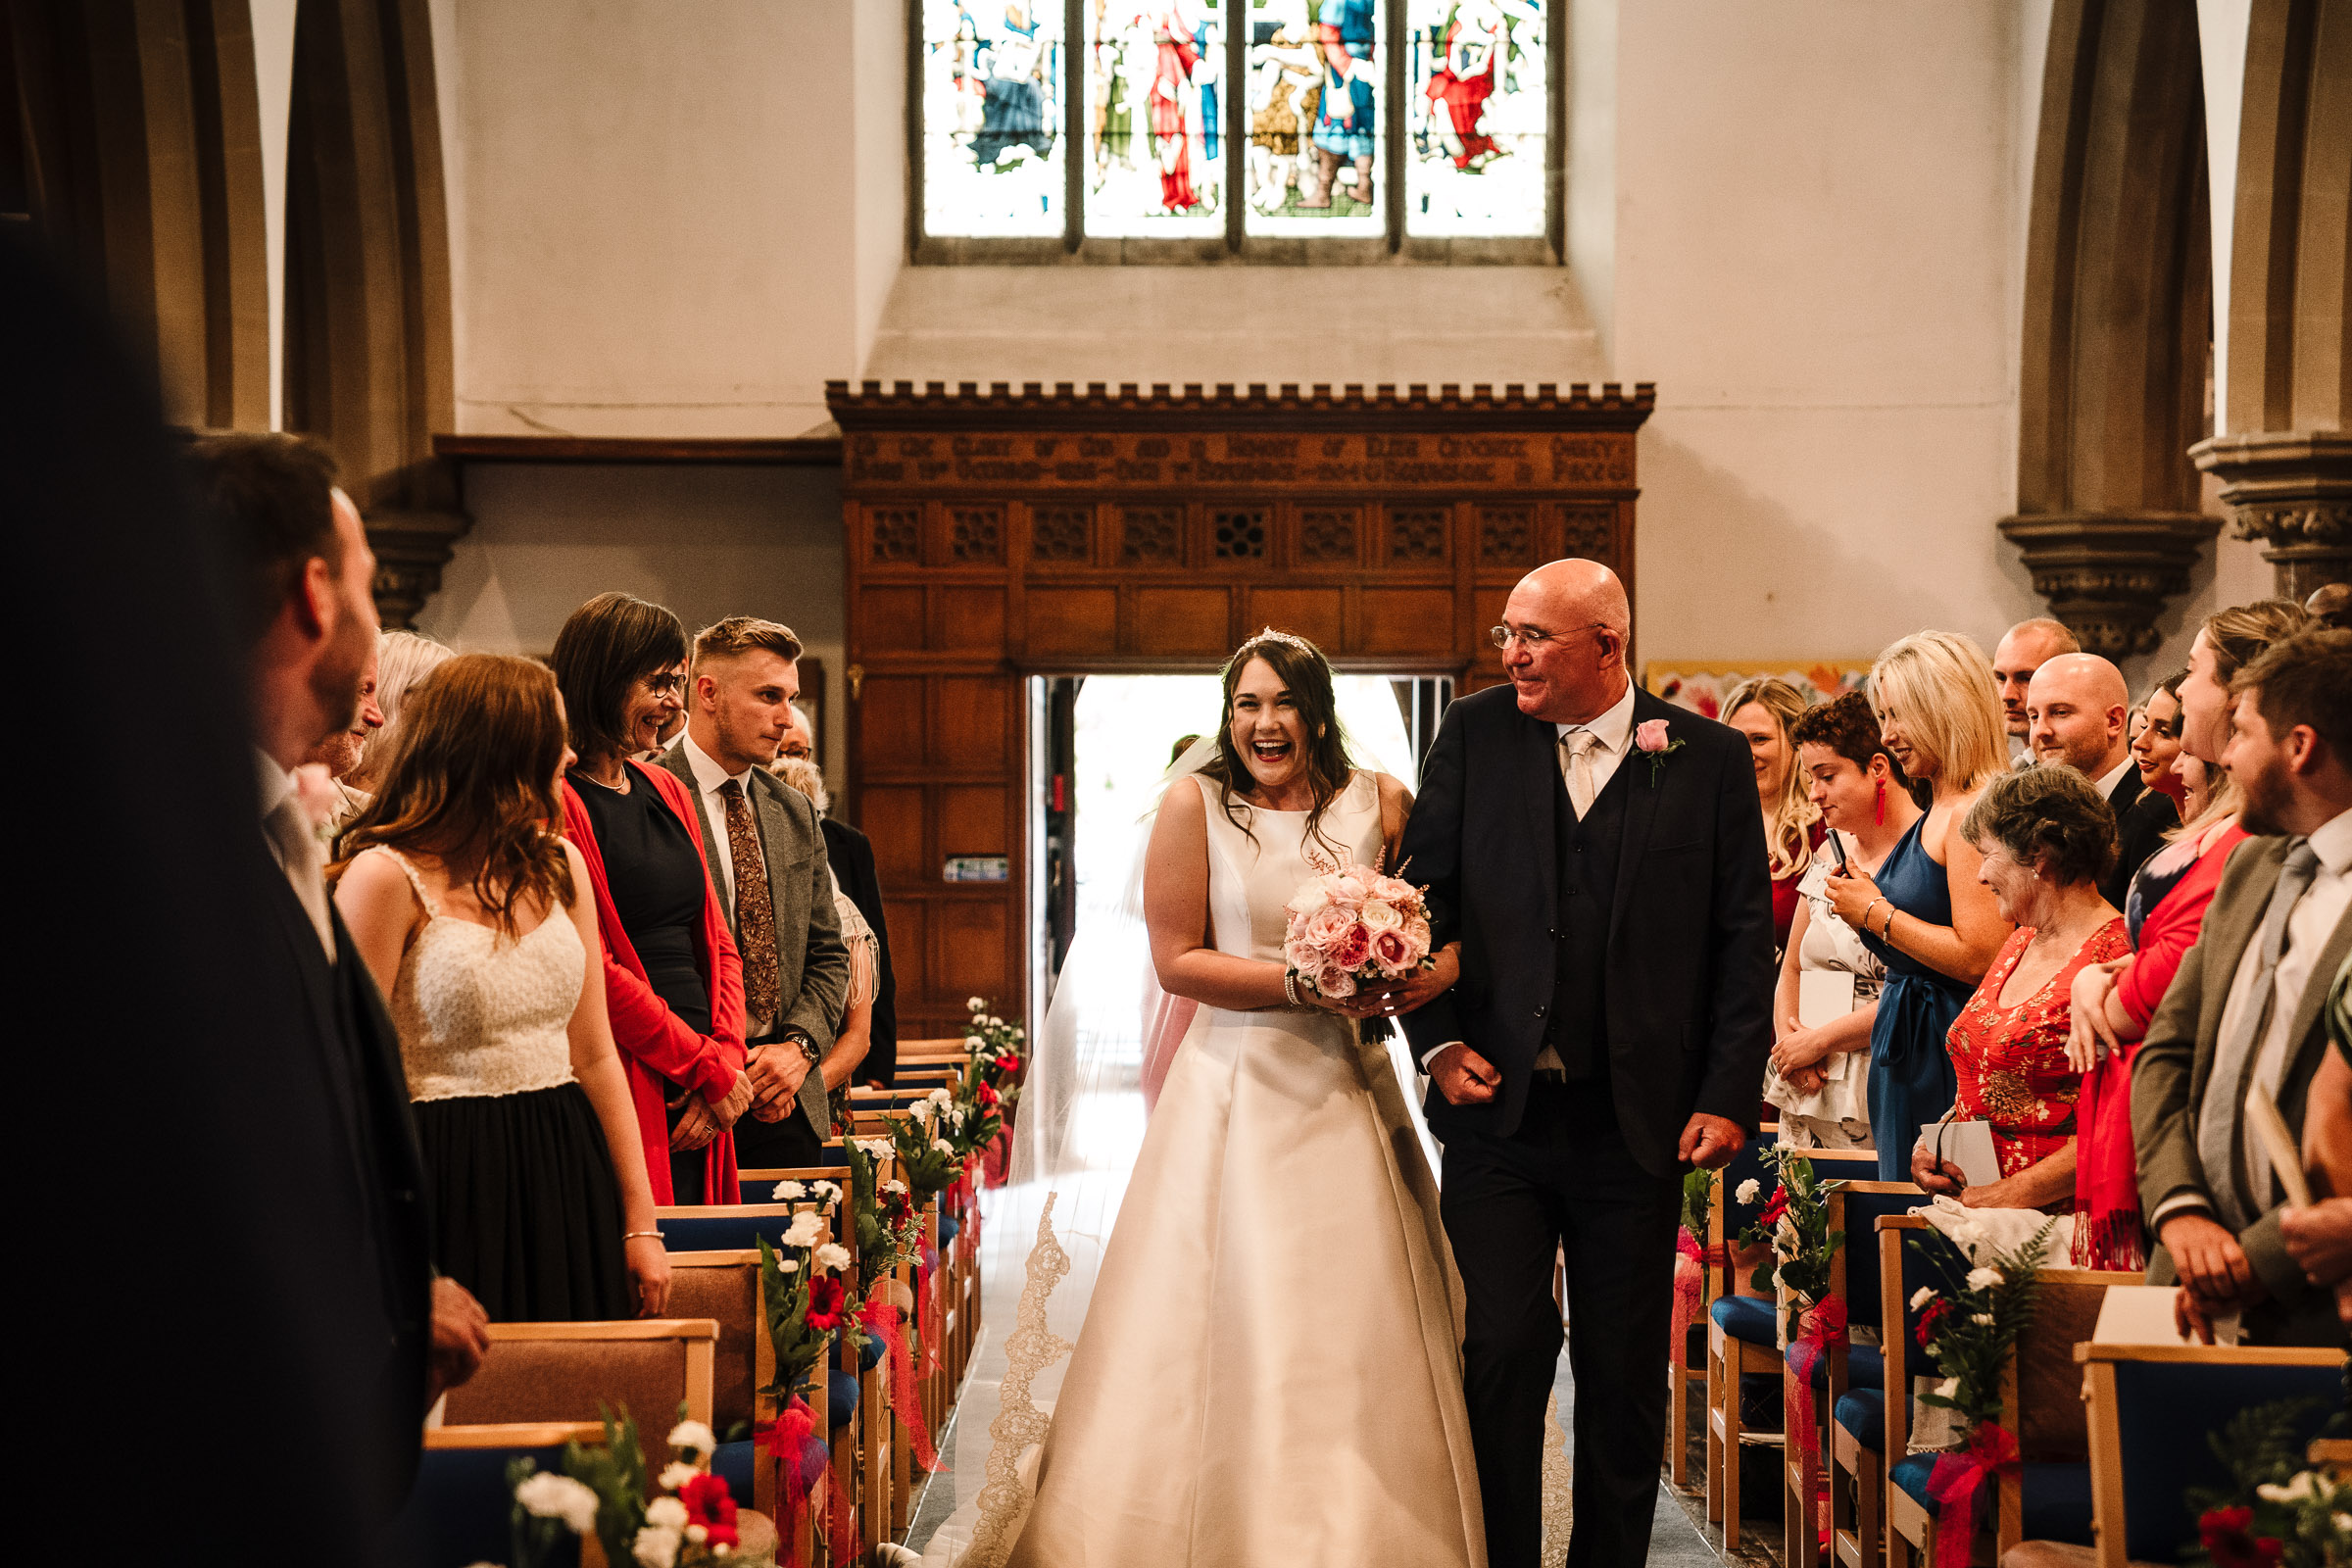 bride walking down the aisle with her father at church wedding